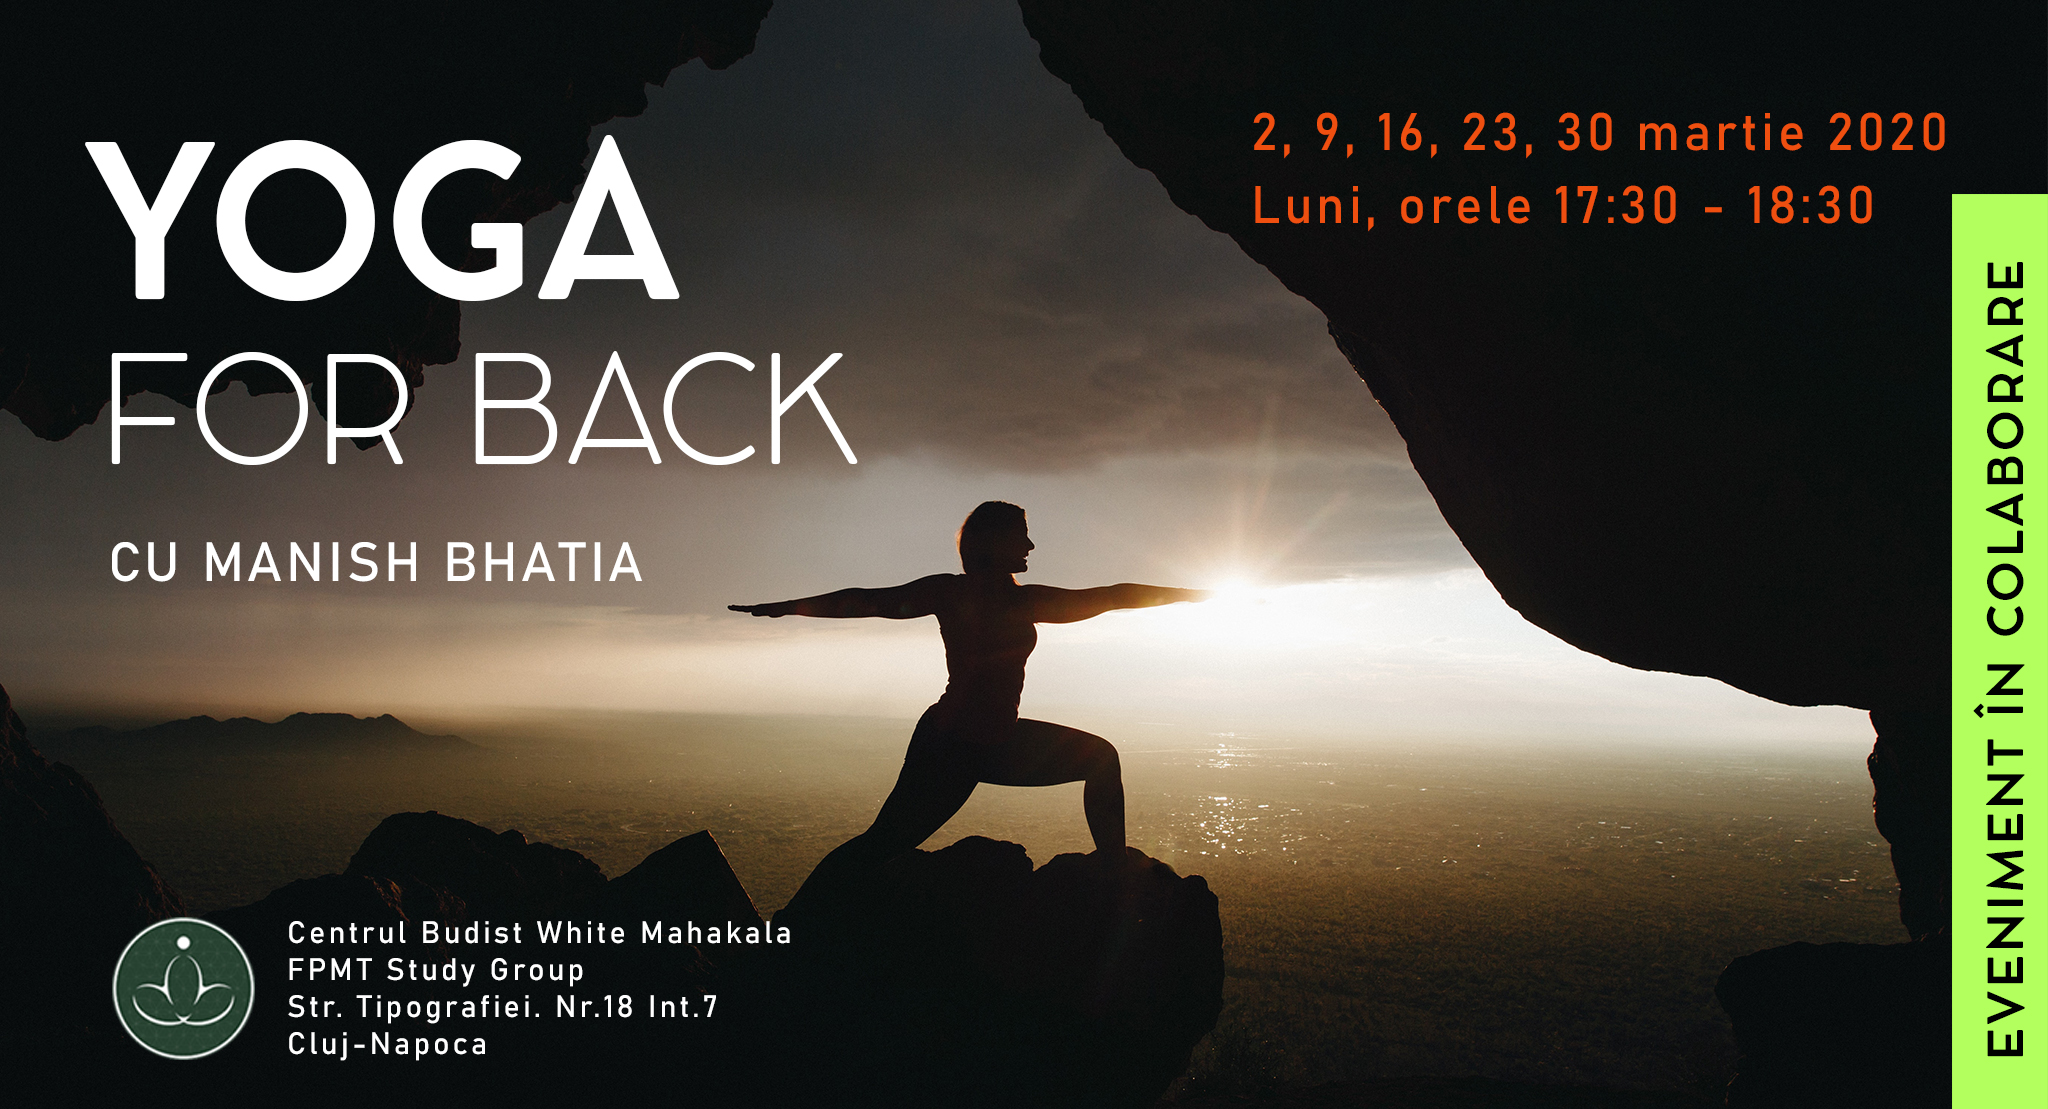 Yoga for Back with Manish